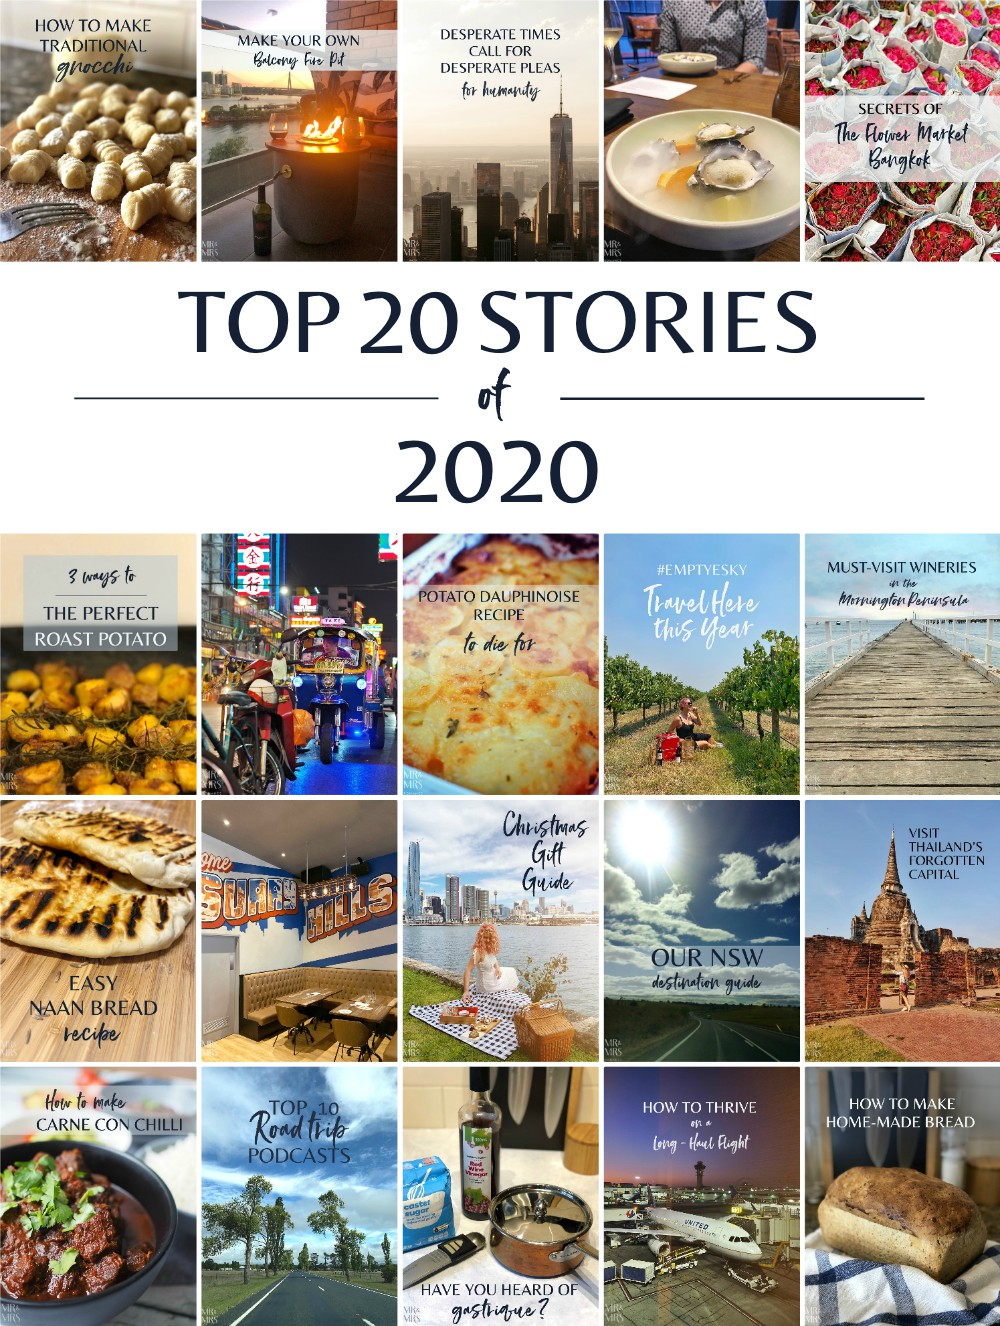 2020 in 20 stories